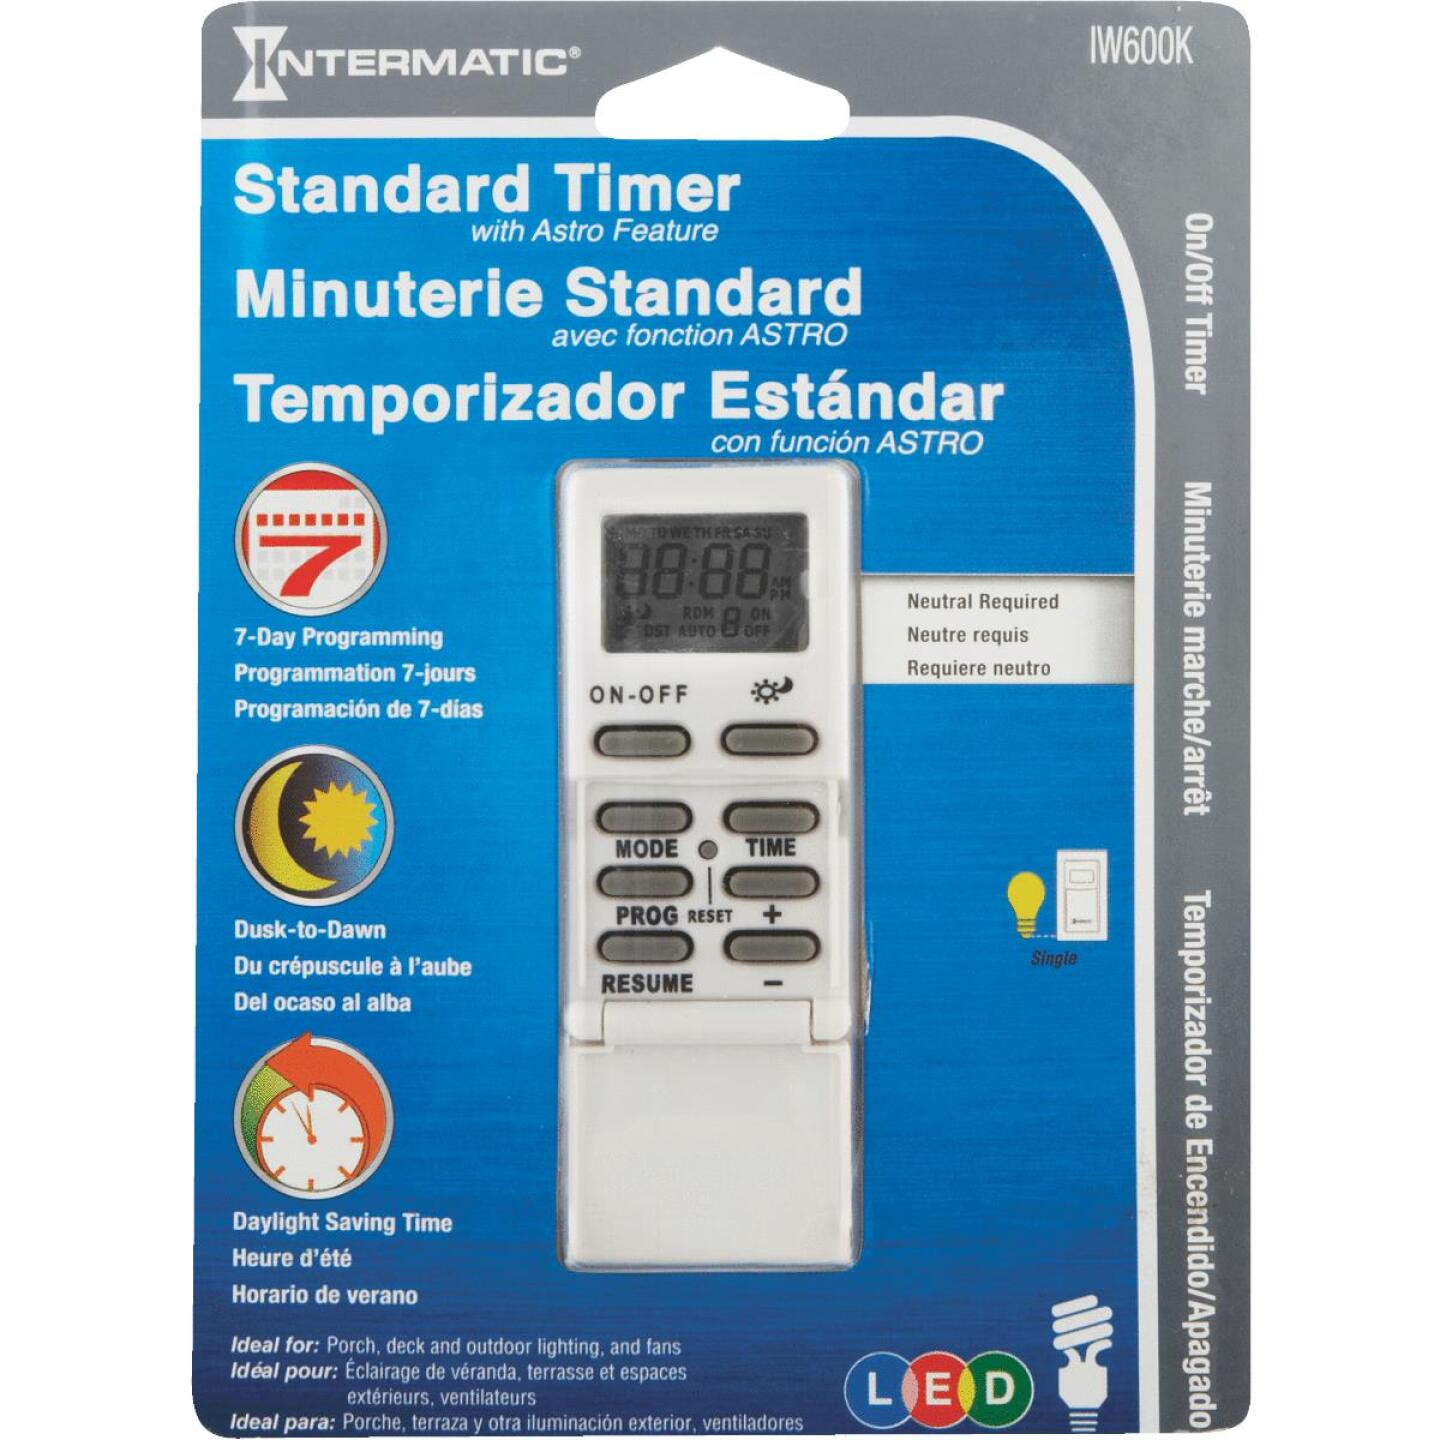 Intermatic 120V 15A 500W Electronic Timer Image 2